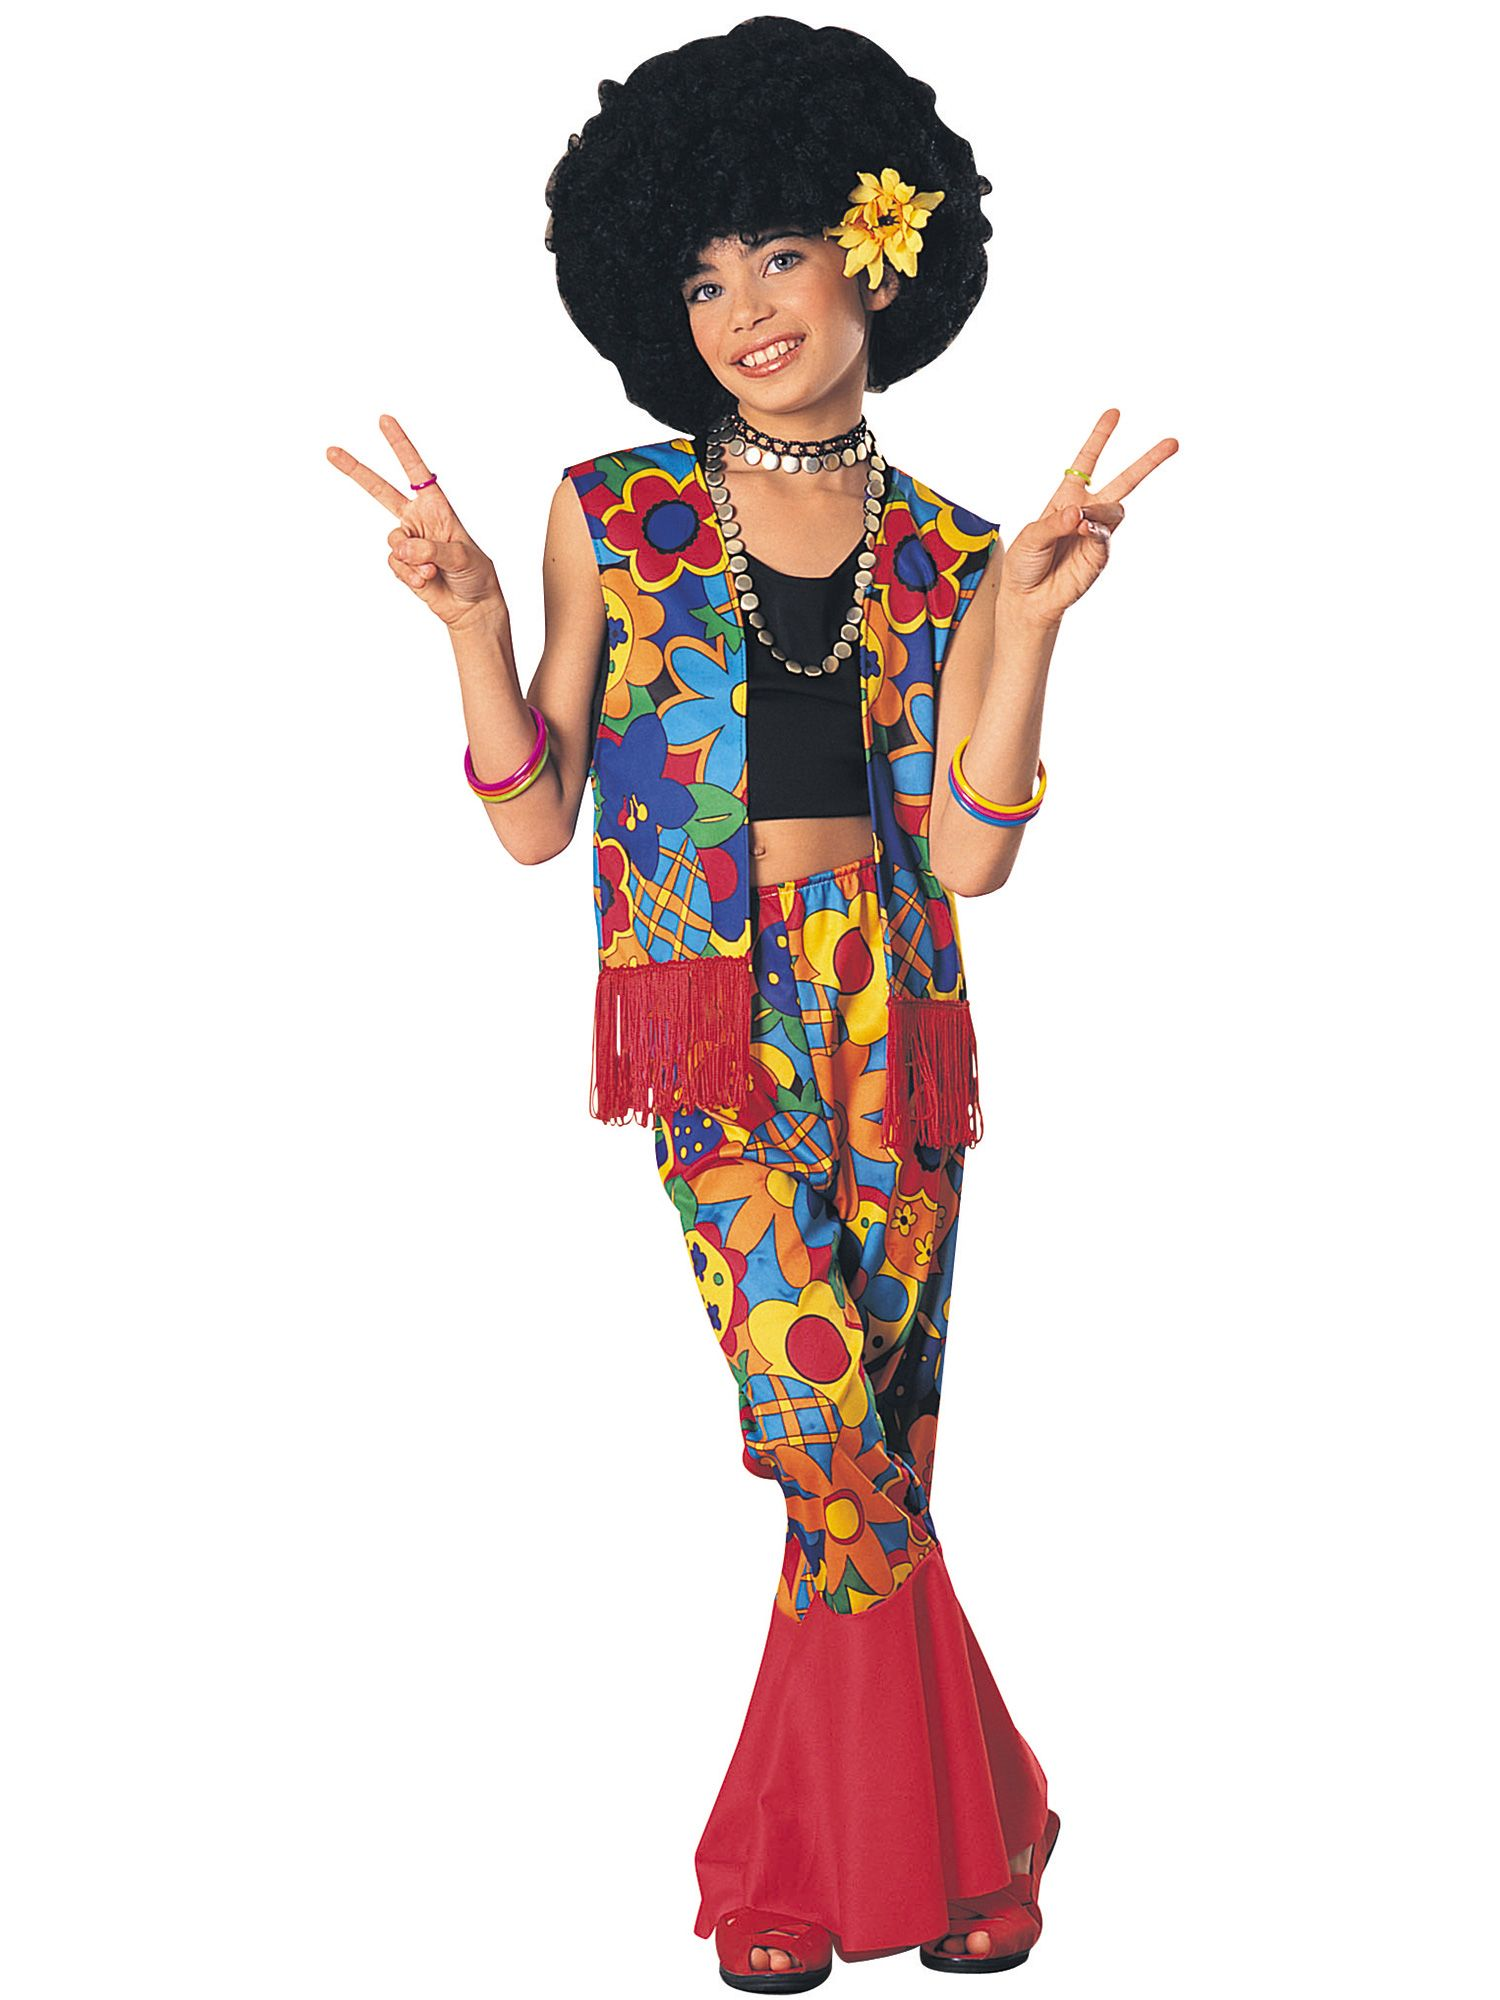 Rubieu0027s Girlu0027s Flower Power Costume  sc 1 st  Nextag & Girl flower power hippie costume | Compare Prices at Nextag